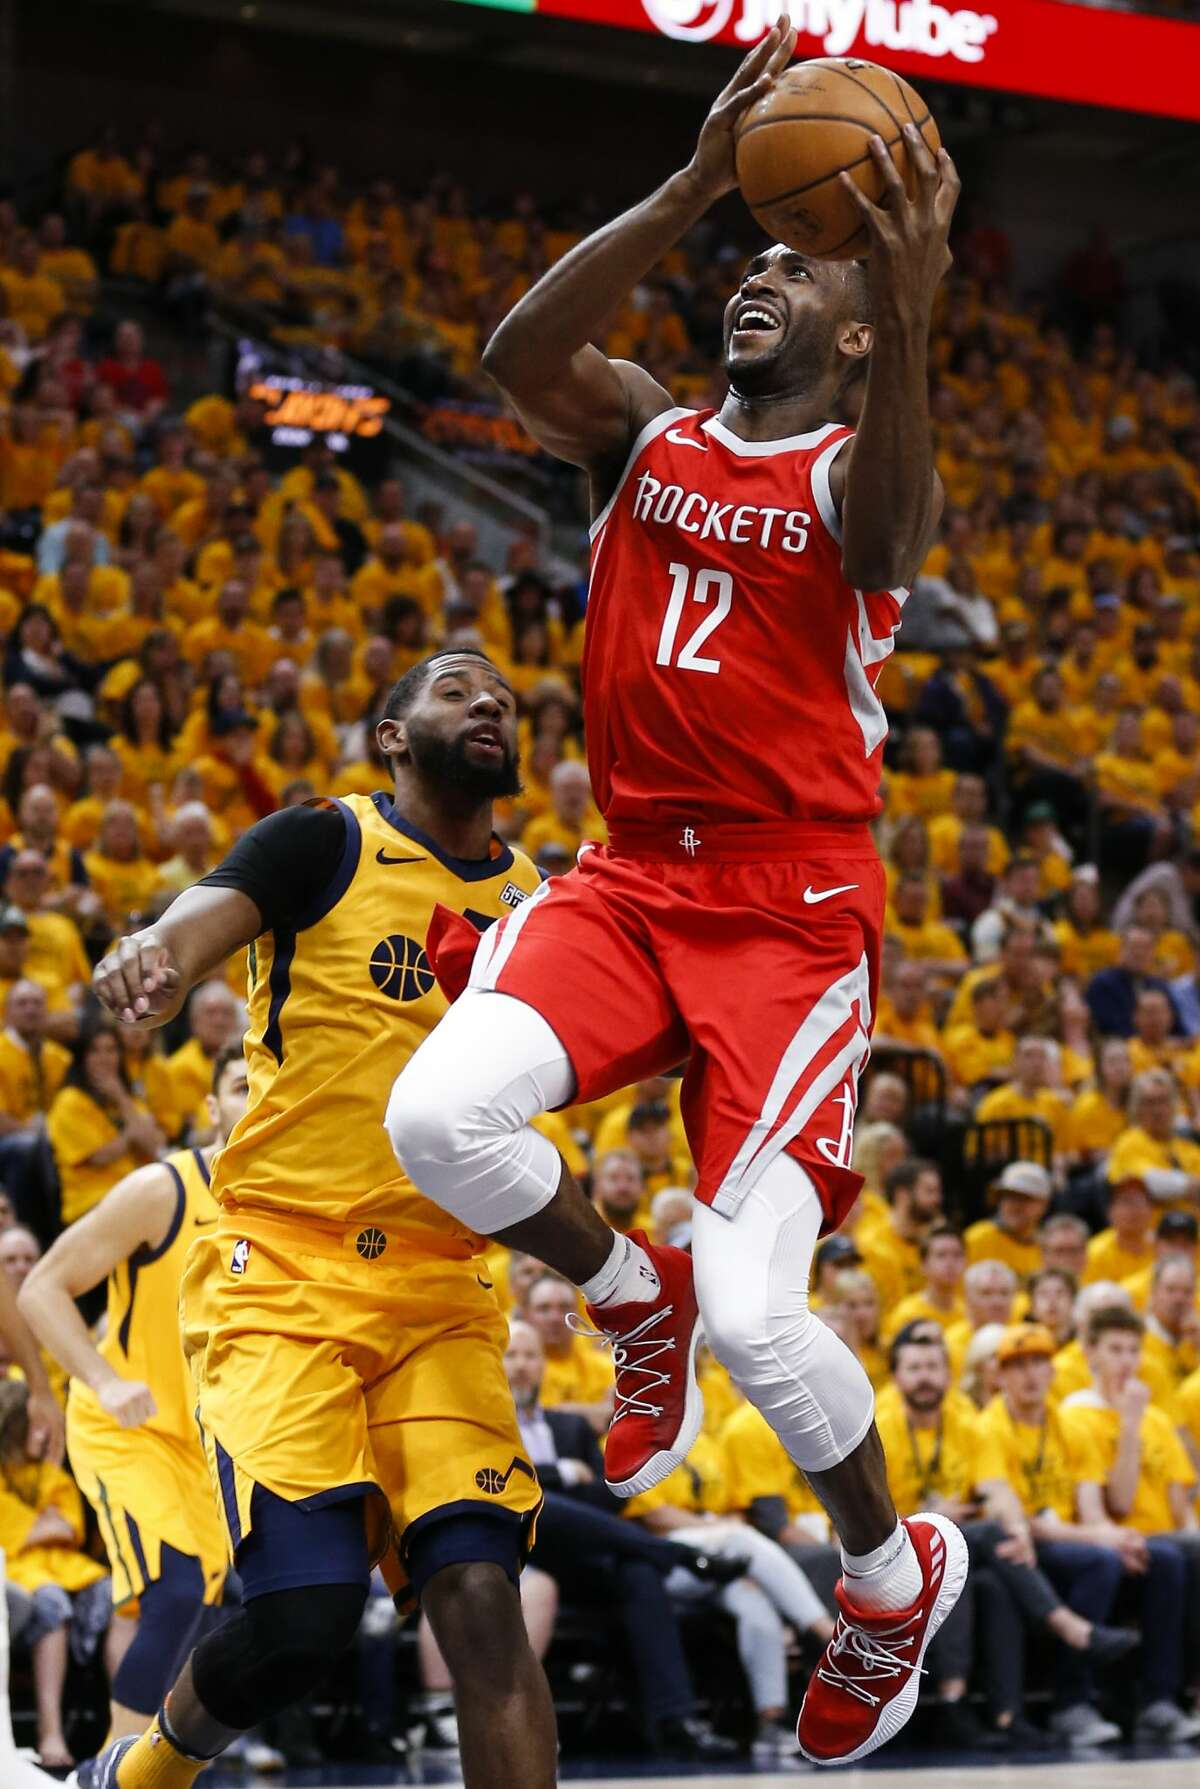 Houston Rockets forward Luc Mbah a Moute (12) takes a shot against the Utah Jazz during the first half of Game 4 of the NBA second-round playoff series at Vivint Smart Home Arena Sunday, May 6, 2018 in Salt Lake City. (Michael Ciaglo / Houston Chronicle)